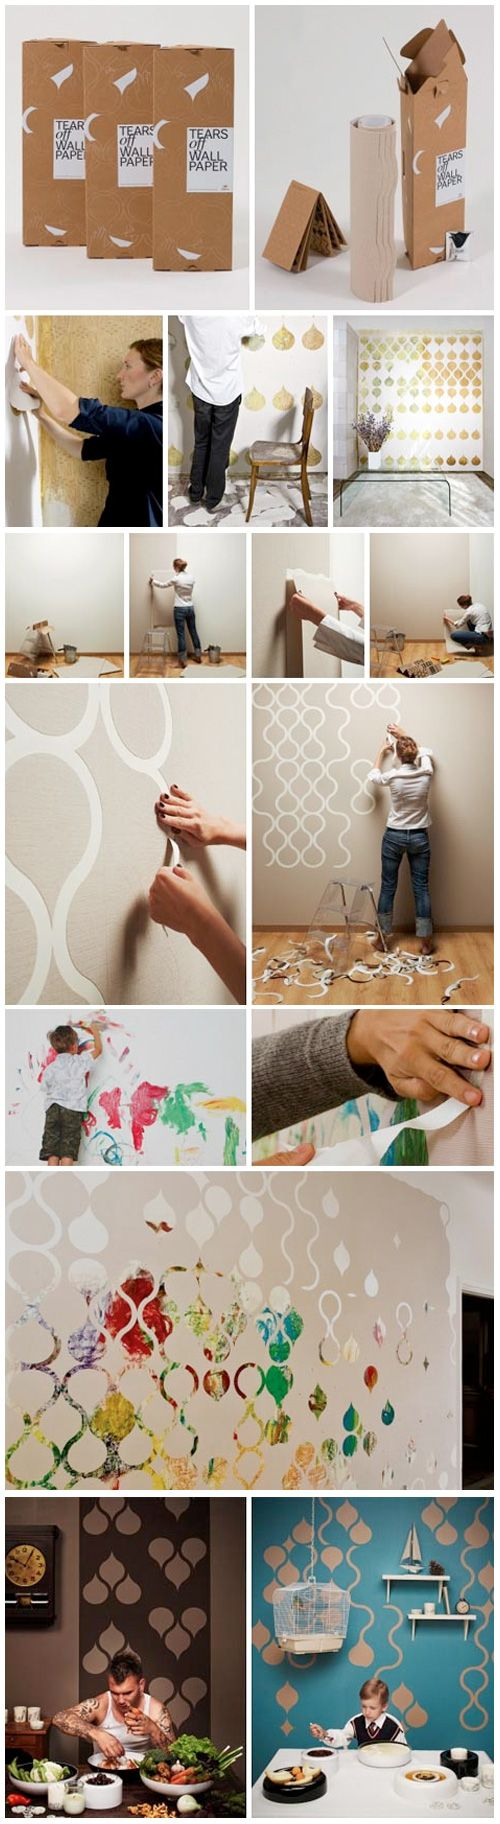 Diy wall design bathroom bedroom wall designs pinterest diy